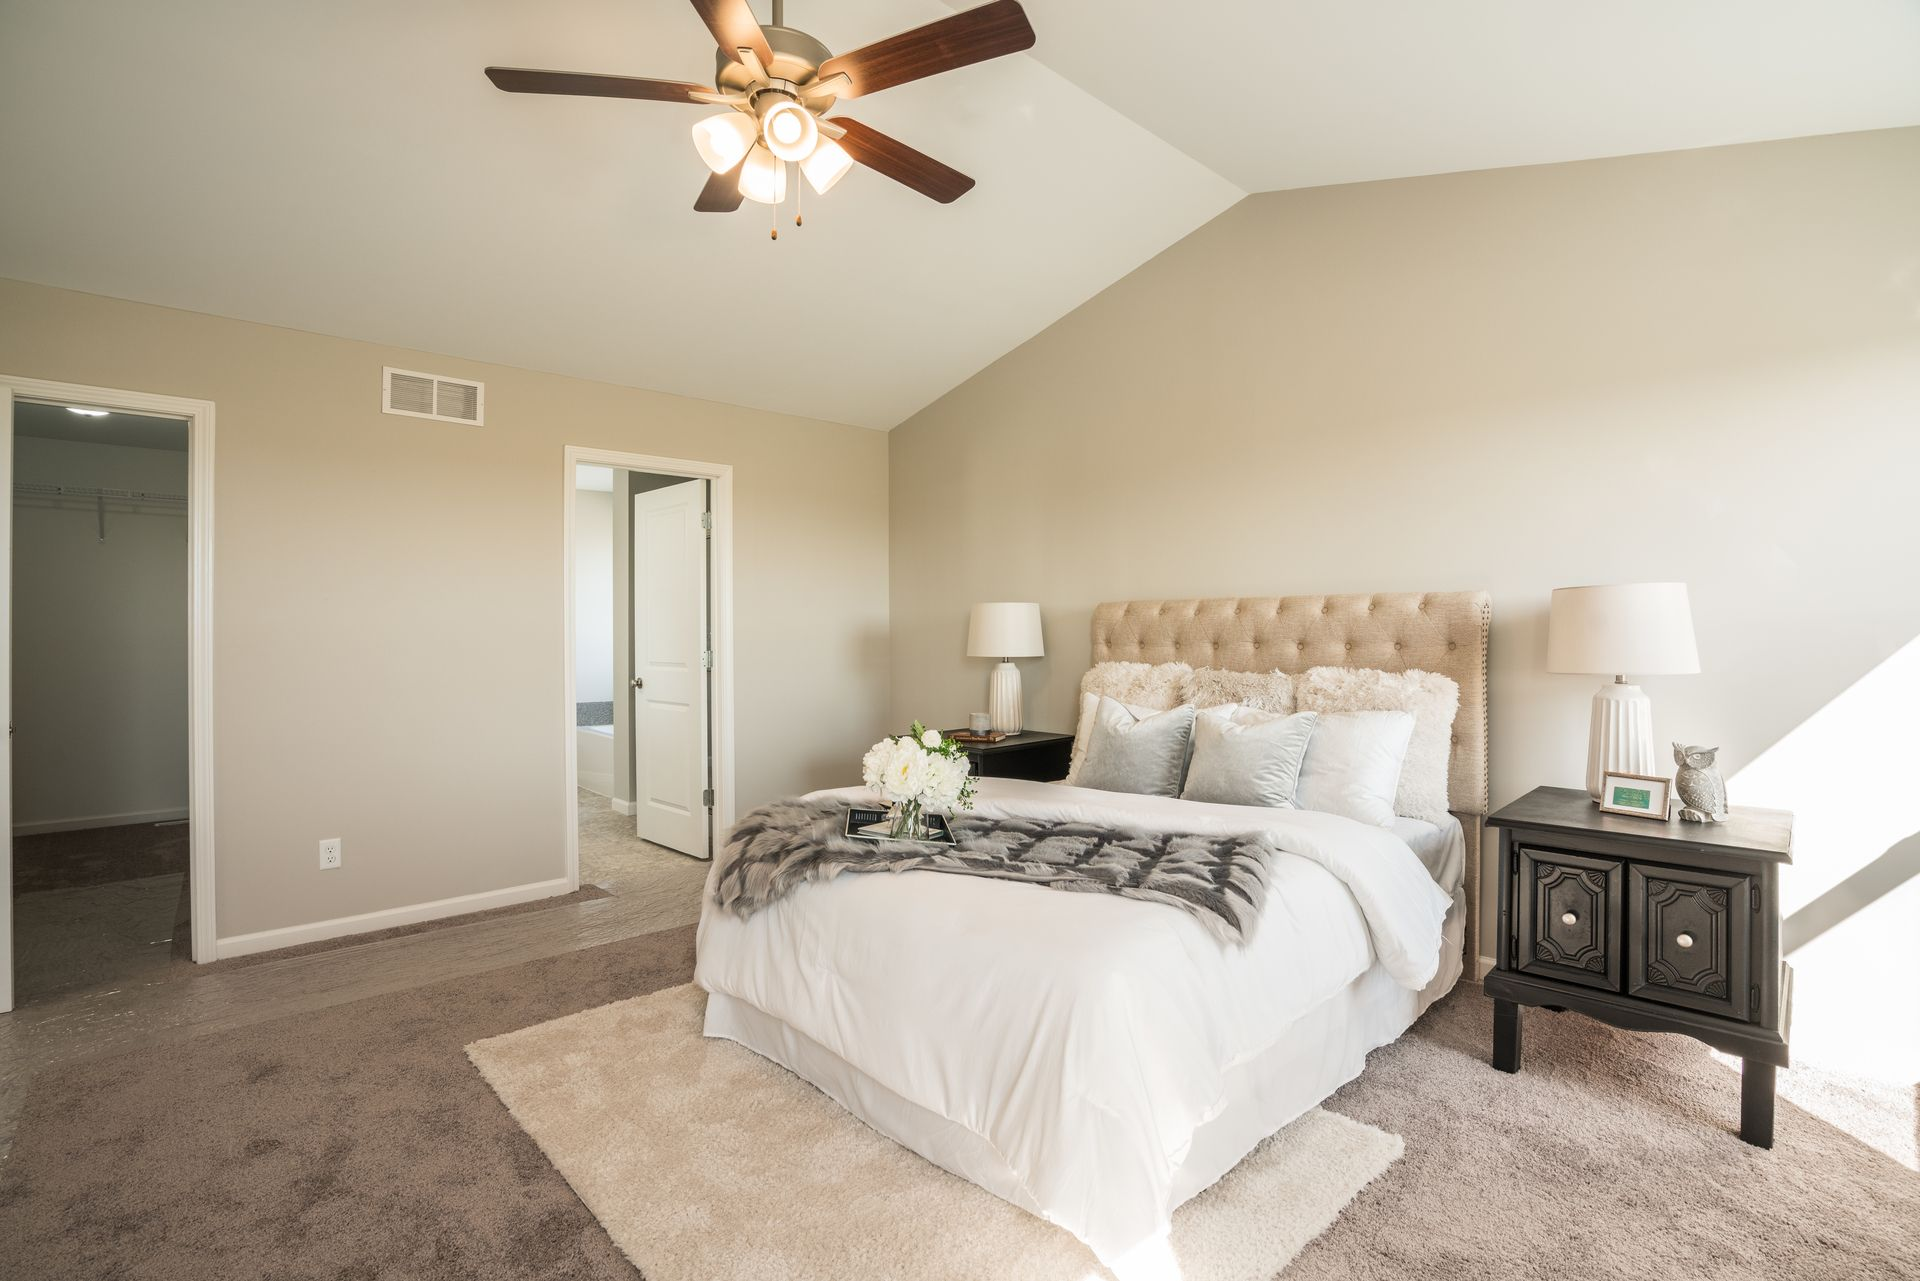 Bedroom featured in the Prescott A By C.A. Jones, Inc.  in St. Louis, IL